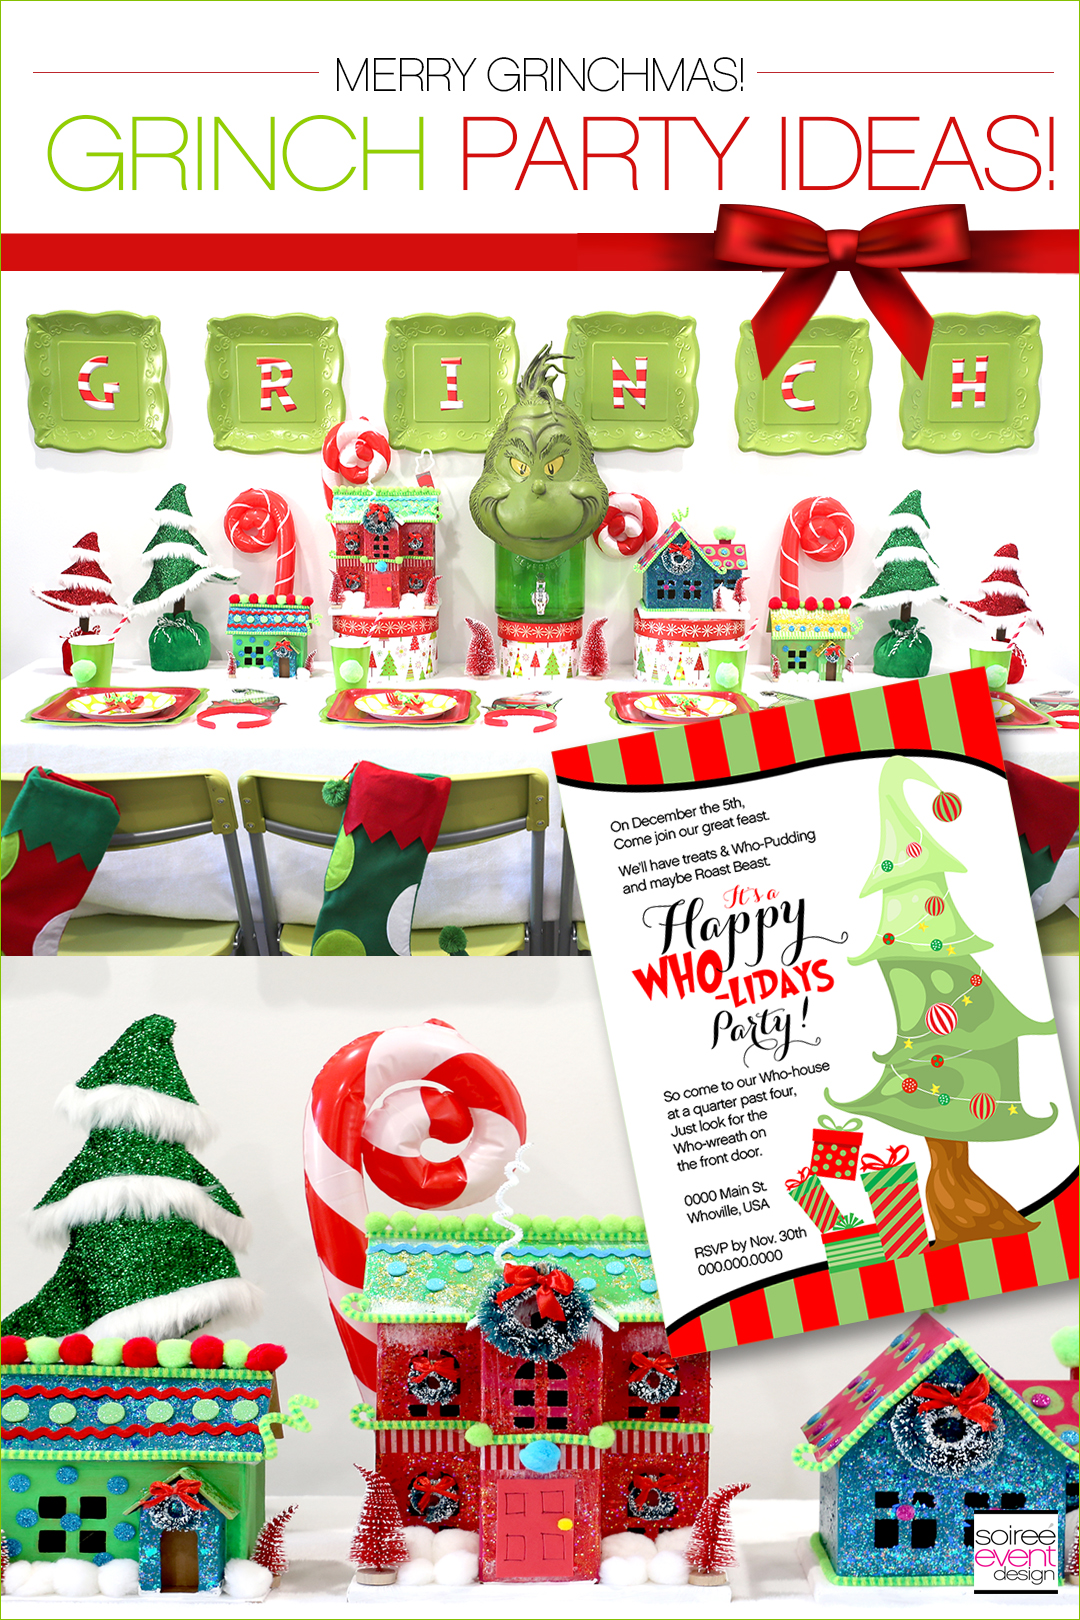 Grinch Party Ideas - Soiree Event Design